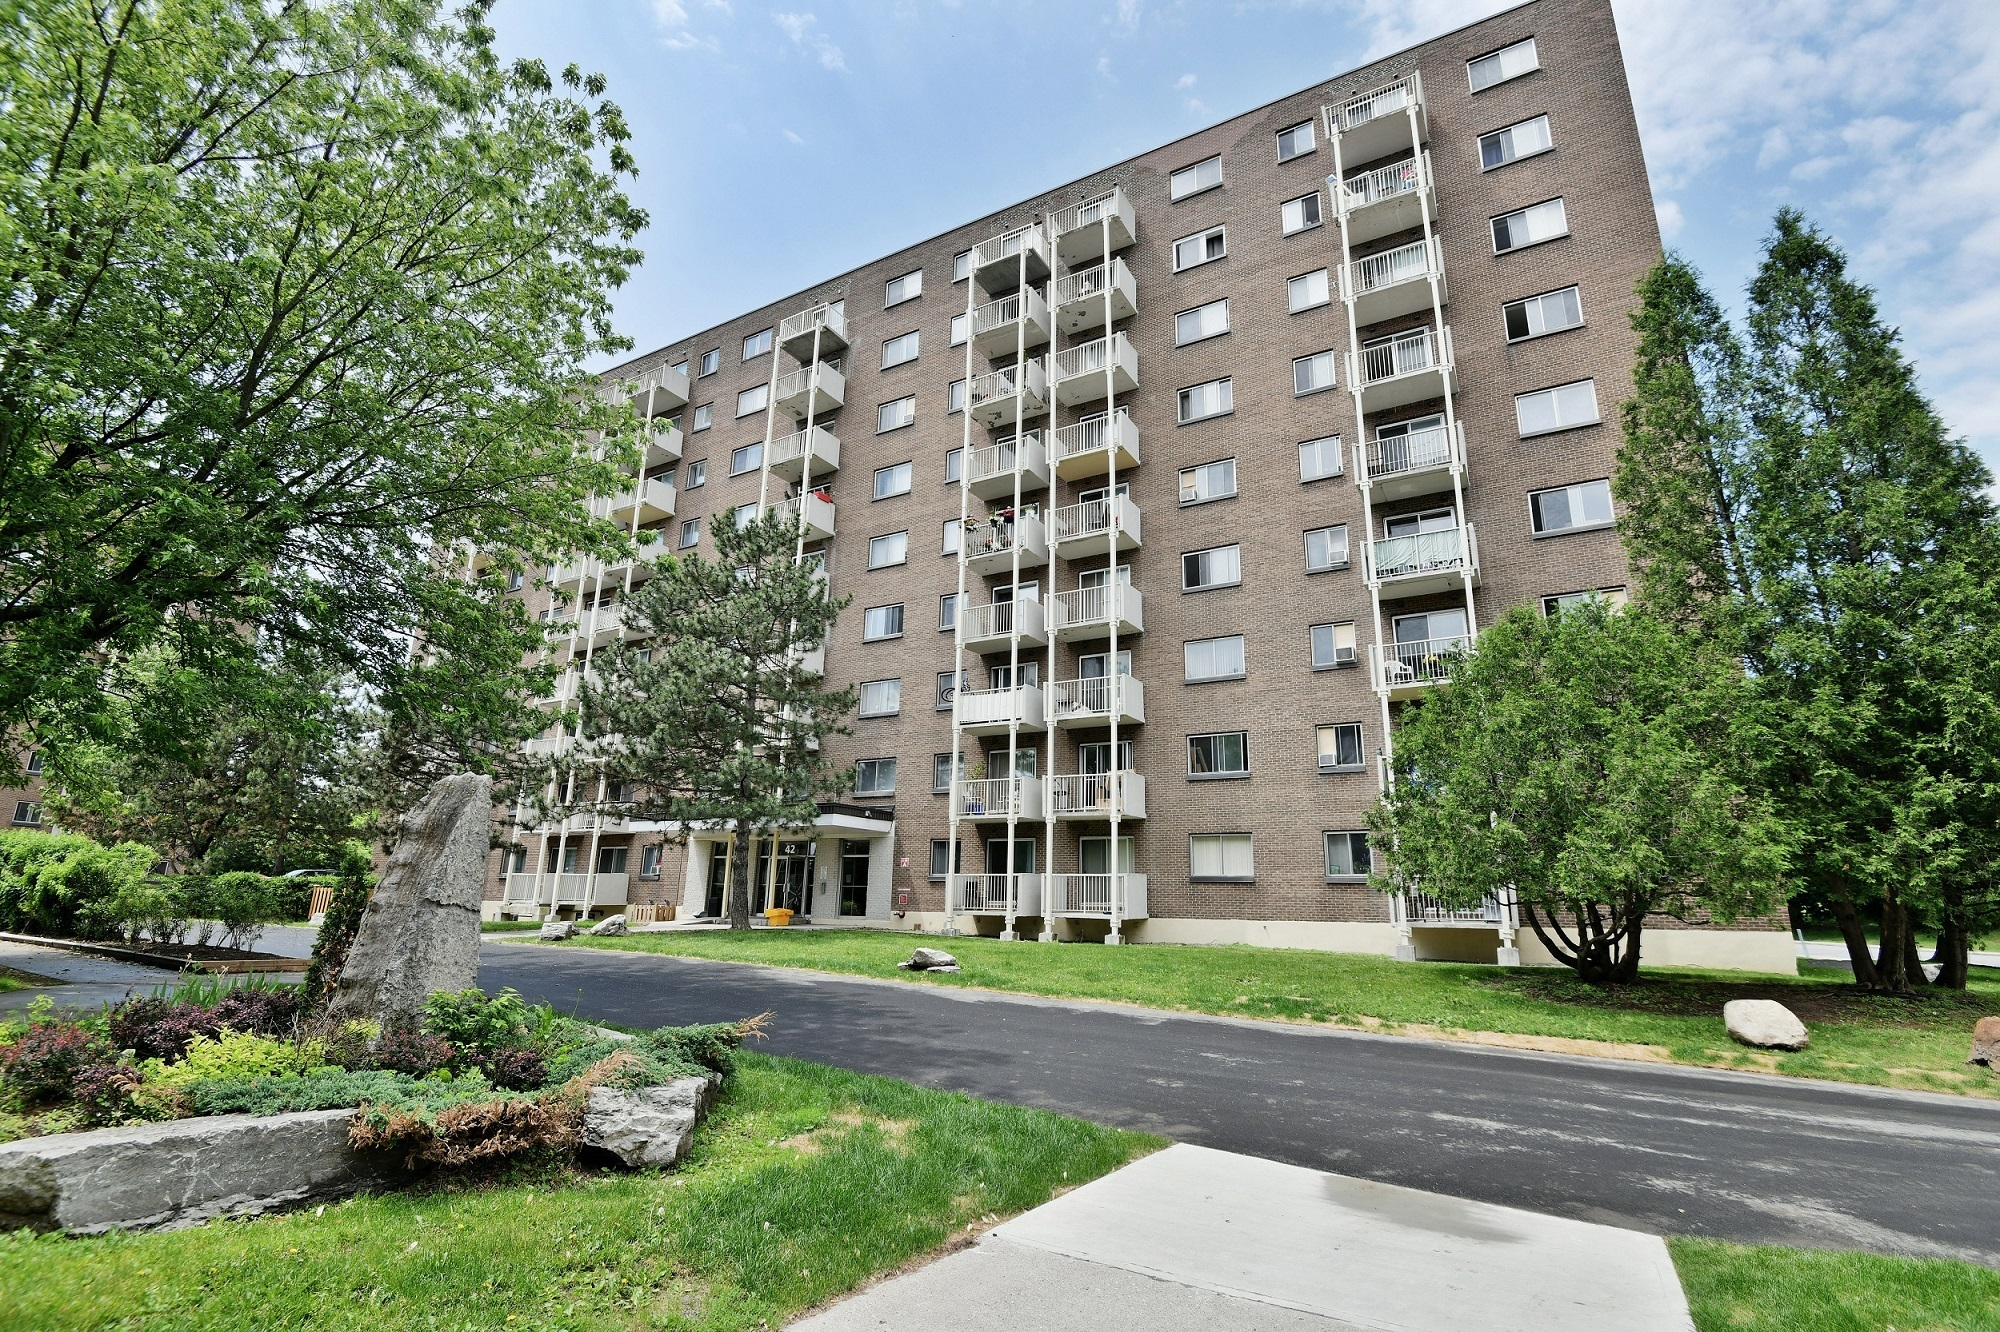 1 bedroom Apartments for rent in Gatineau-Hull at Habitat du Lac Leamy - Photo 01 - RentQuebecApartments – L401592